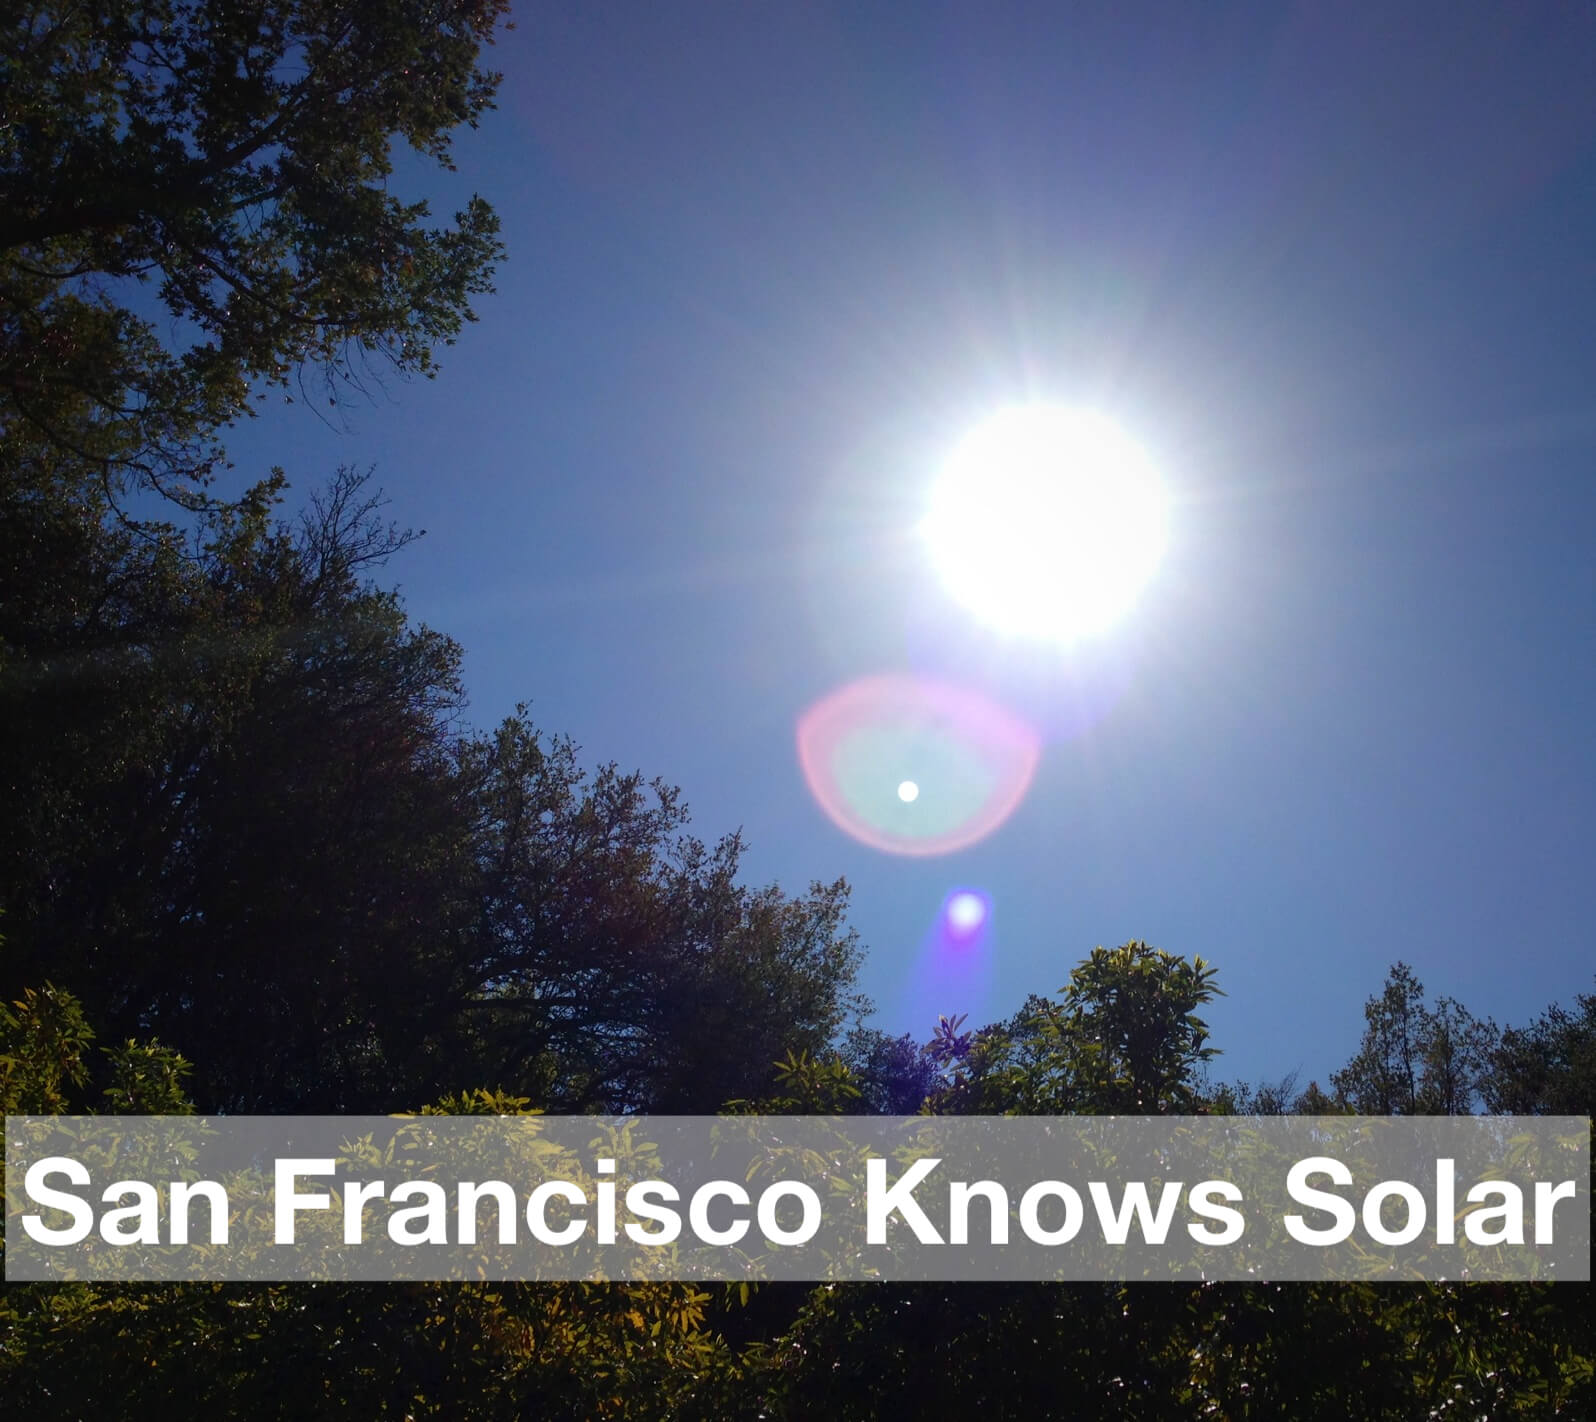 San Francisco knows solar